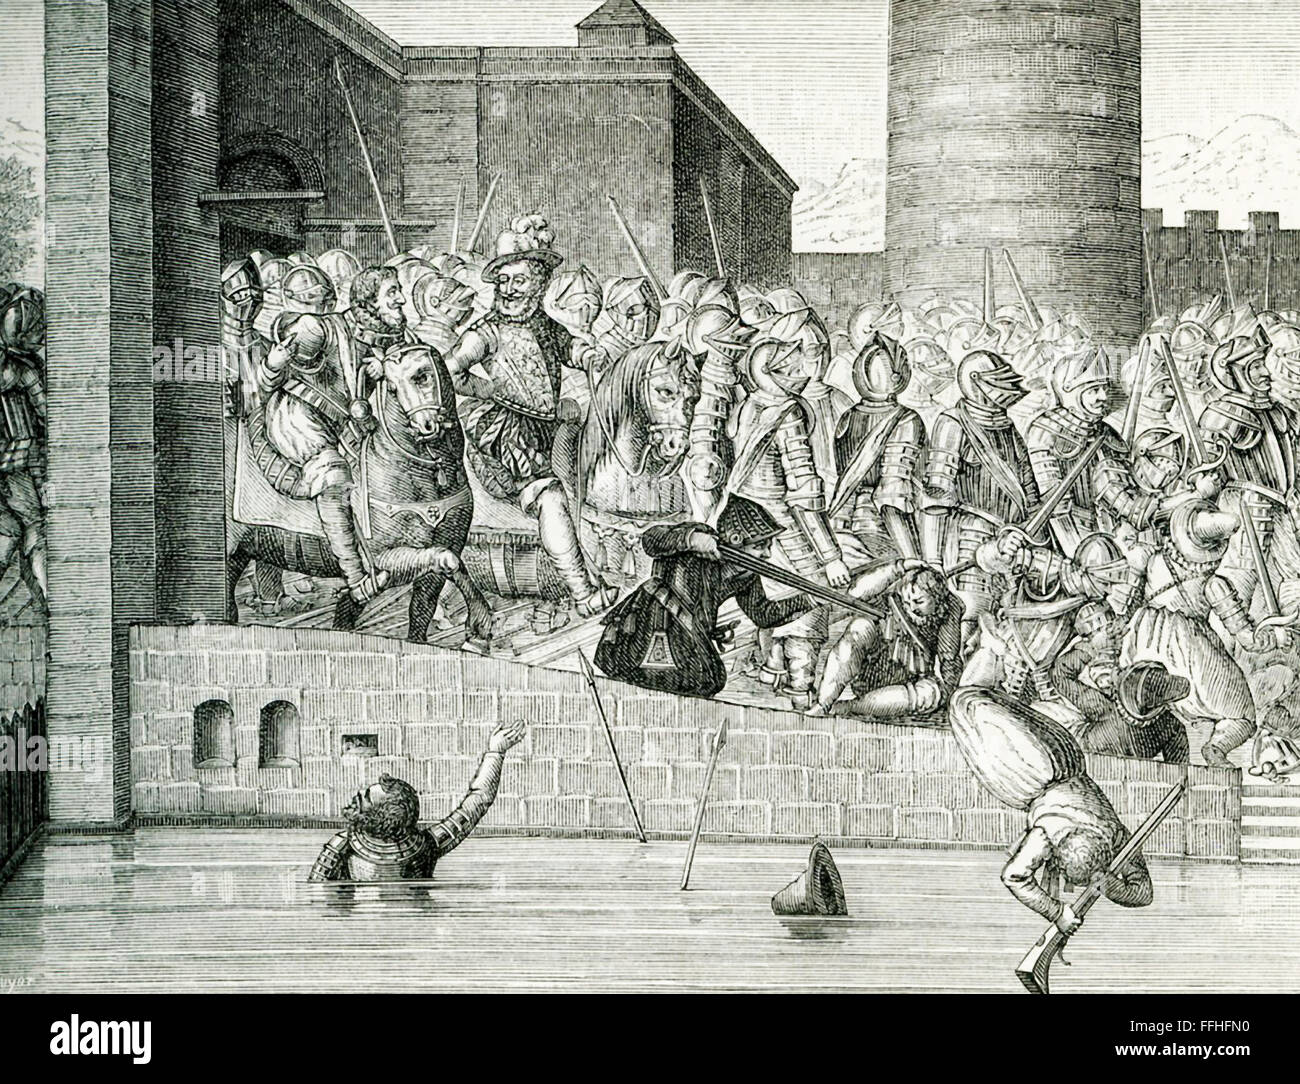 This engraving shows the entry of Henry IV in Paris with more than 1,000 armed cavalry, known as cuirassiers. The Stock Photo